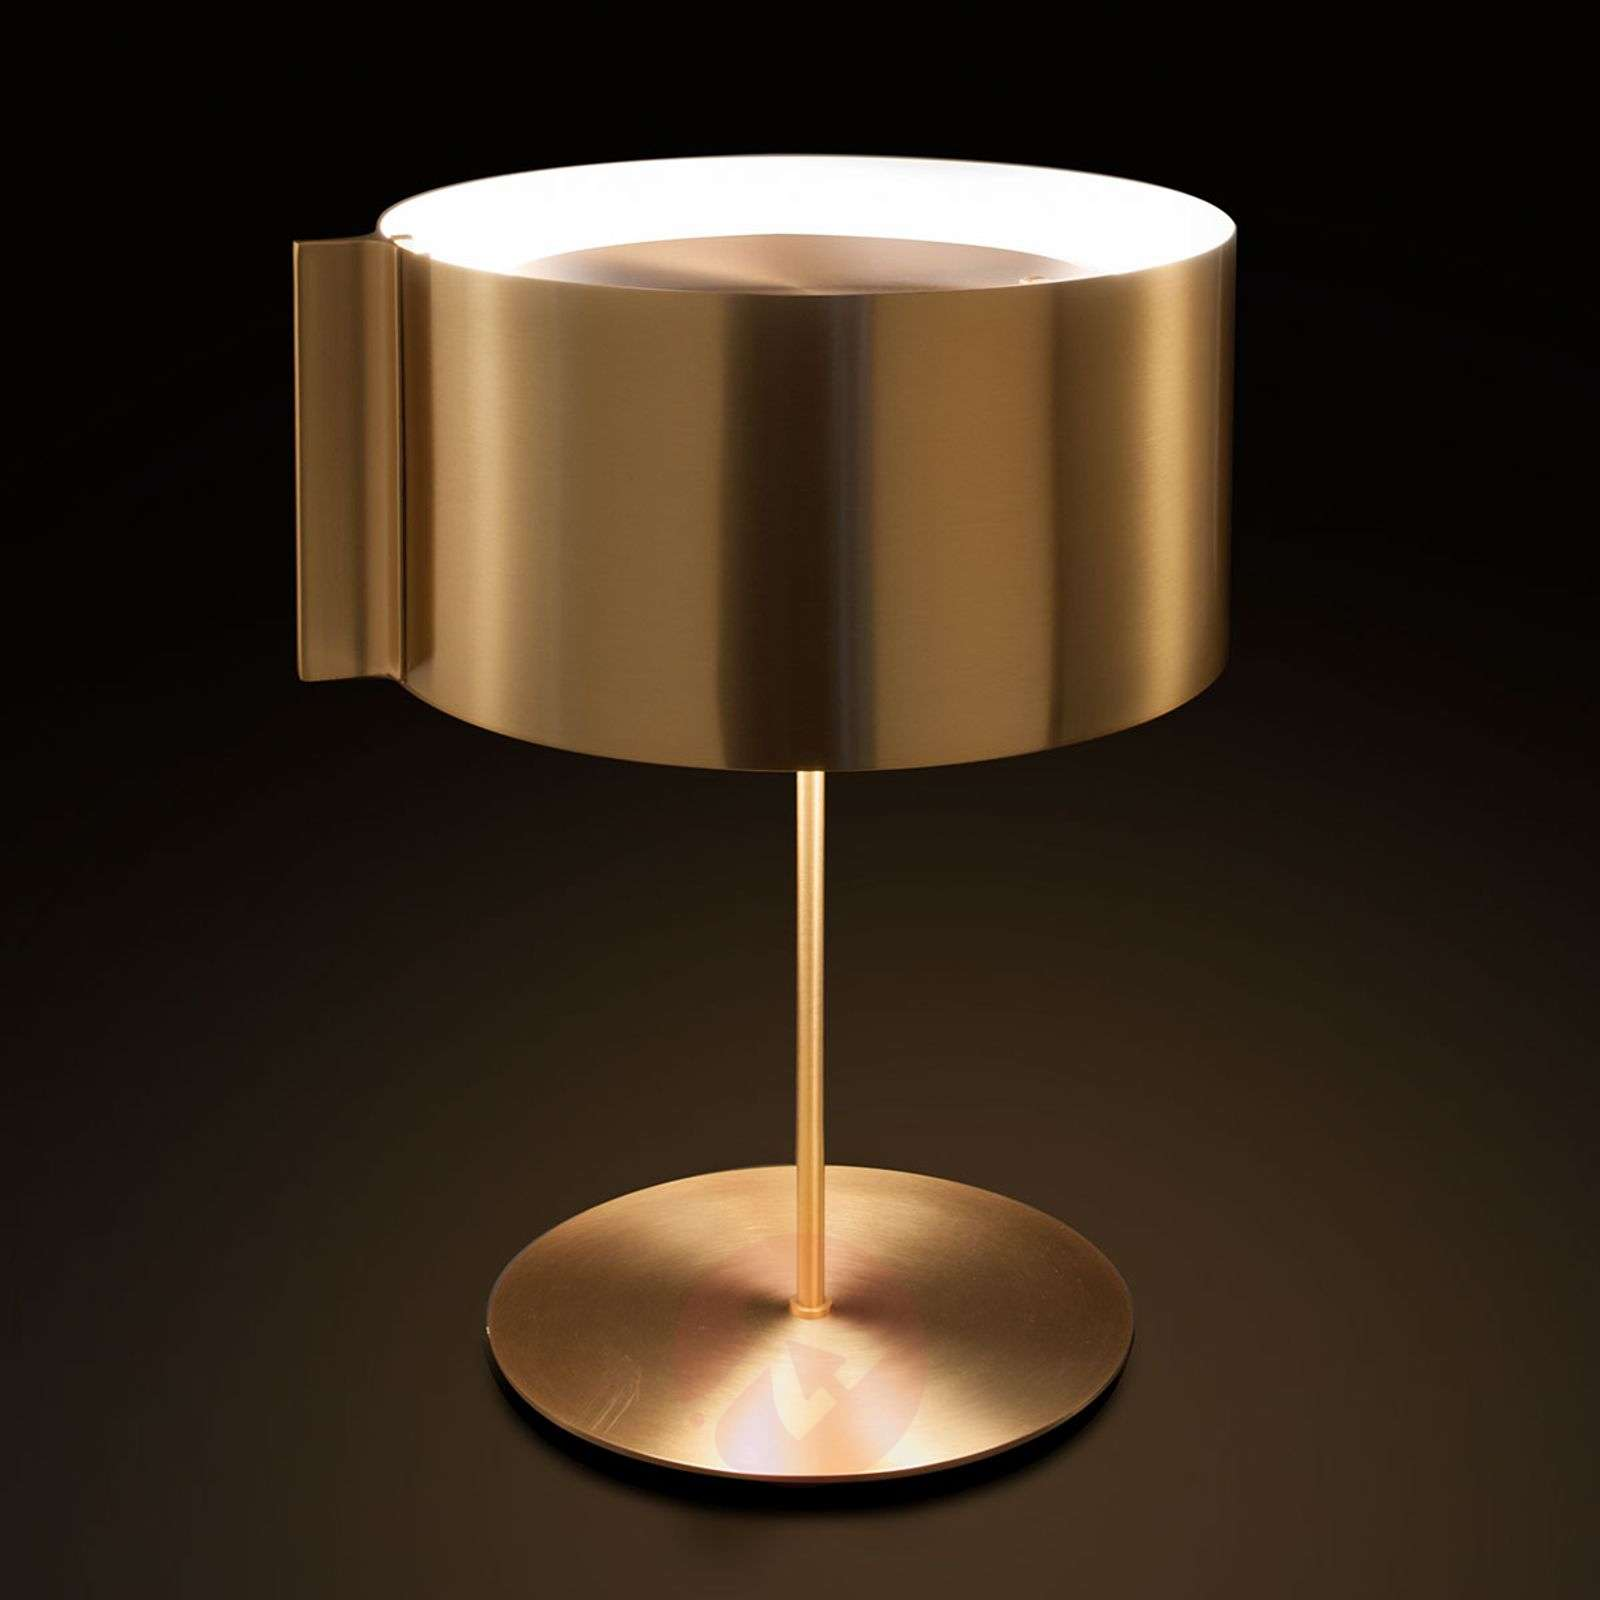 Lampada di design Switch oro-7265081-01